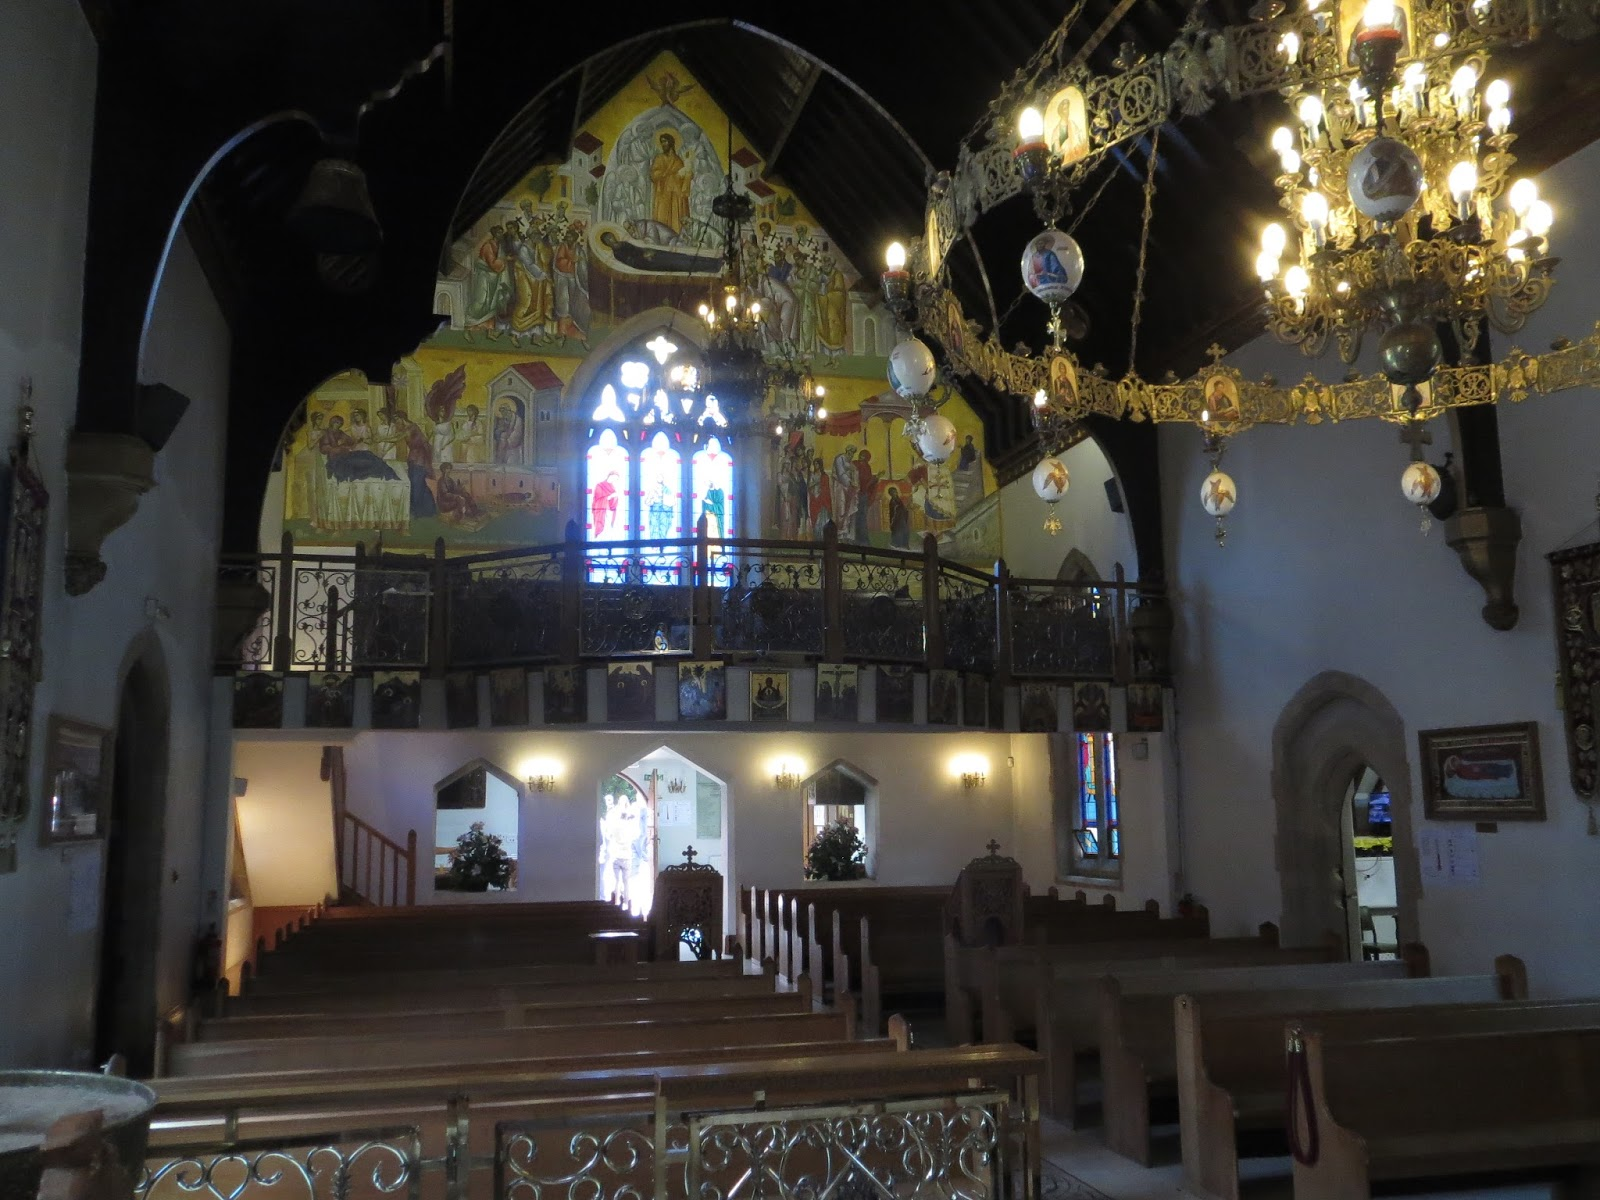 the greek orthodox church and its followers The orthodox christian church emphasizes its historic roots in and continuity with the early christ's original followers  annunciation greek orthodox church.